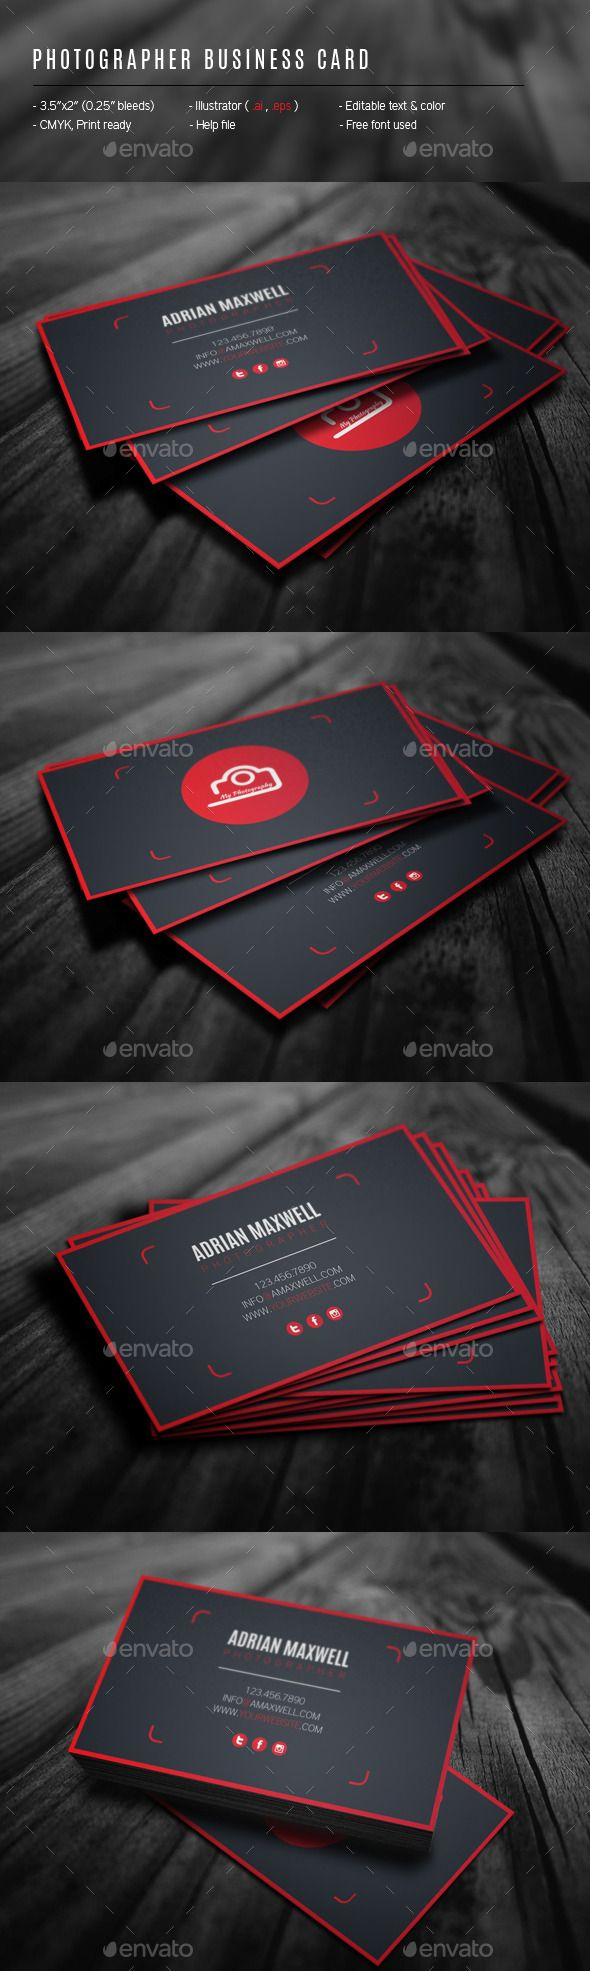 Best 25 photographer business cards ideas on pinterest photographer business card reheart